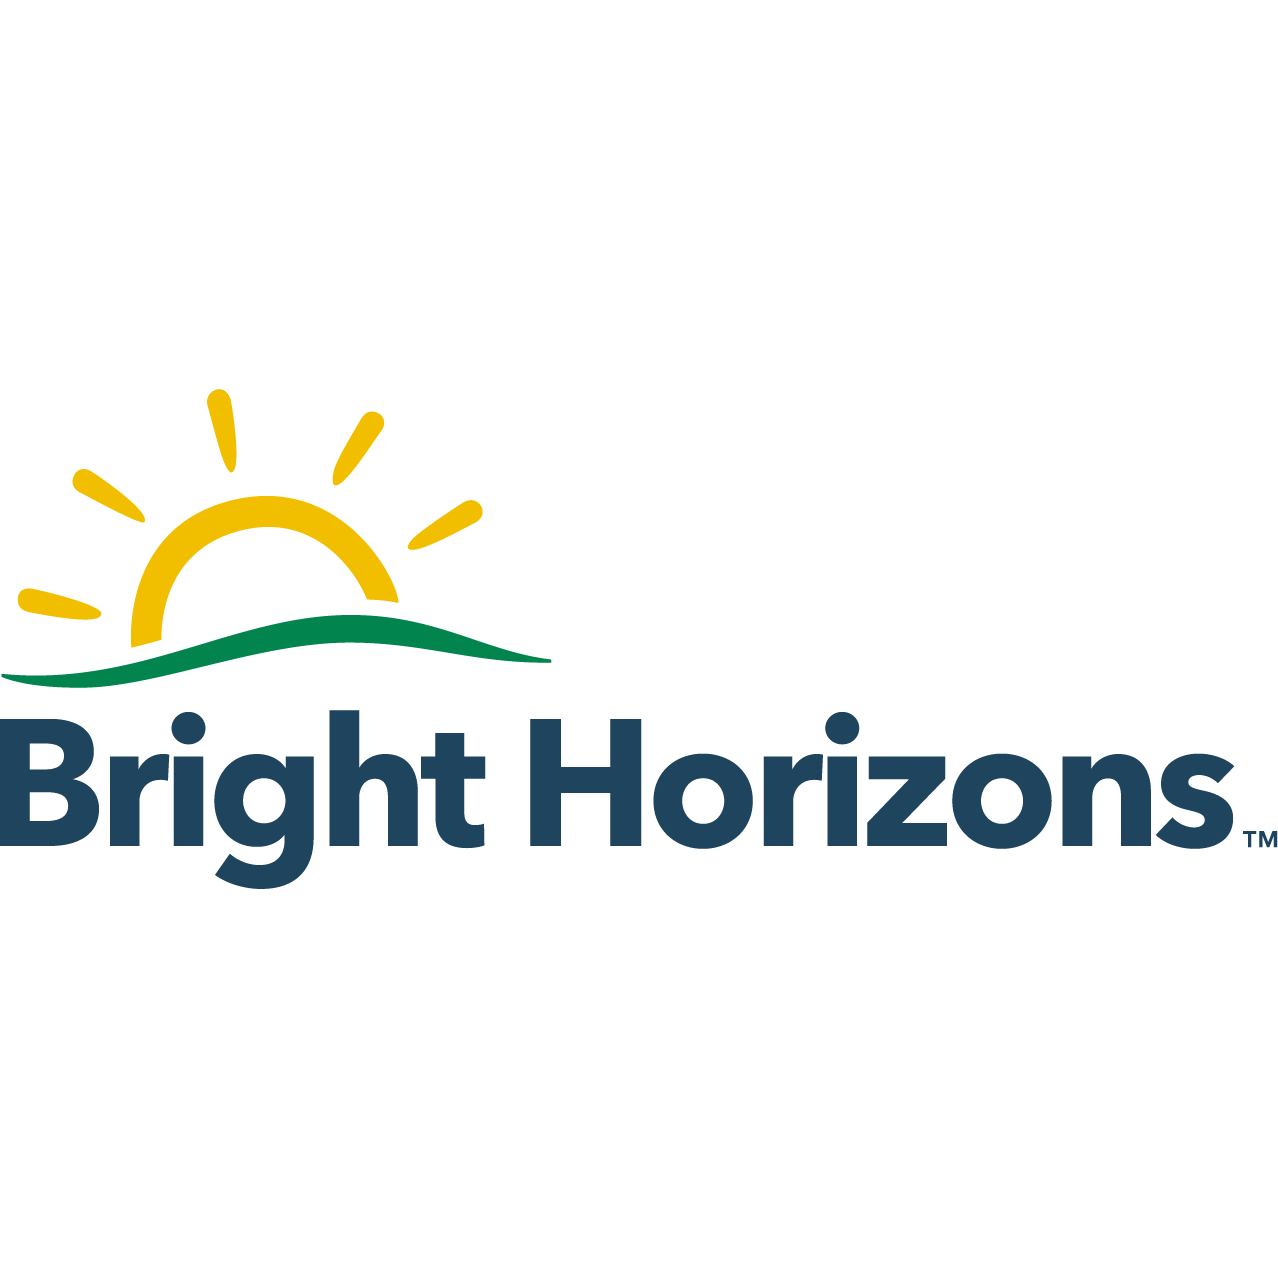 Bright Horizons Fulbourn Capital Park - Cambridge, Cambridgeshire CB21 5XG - 03334 551214 | ShowMeLocal.com